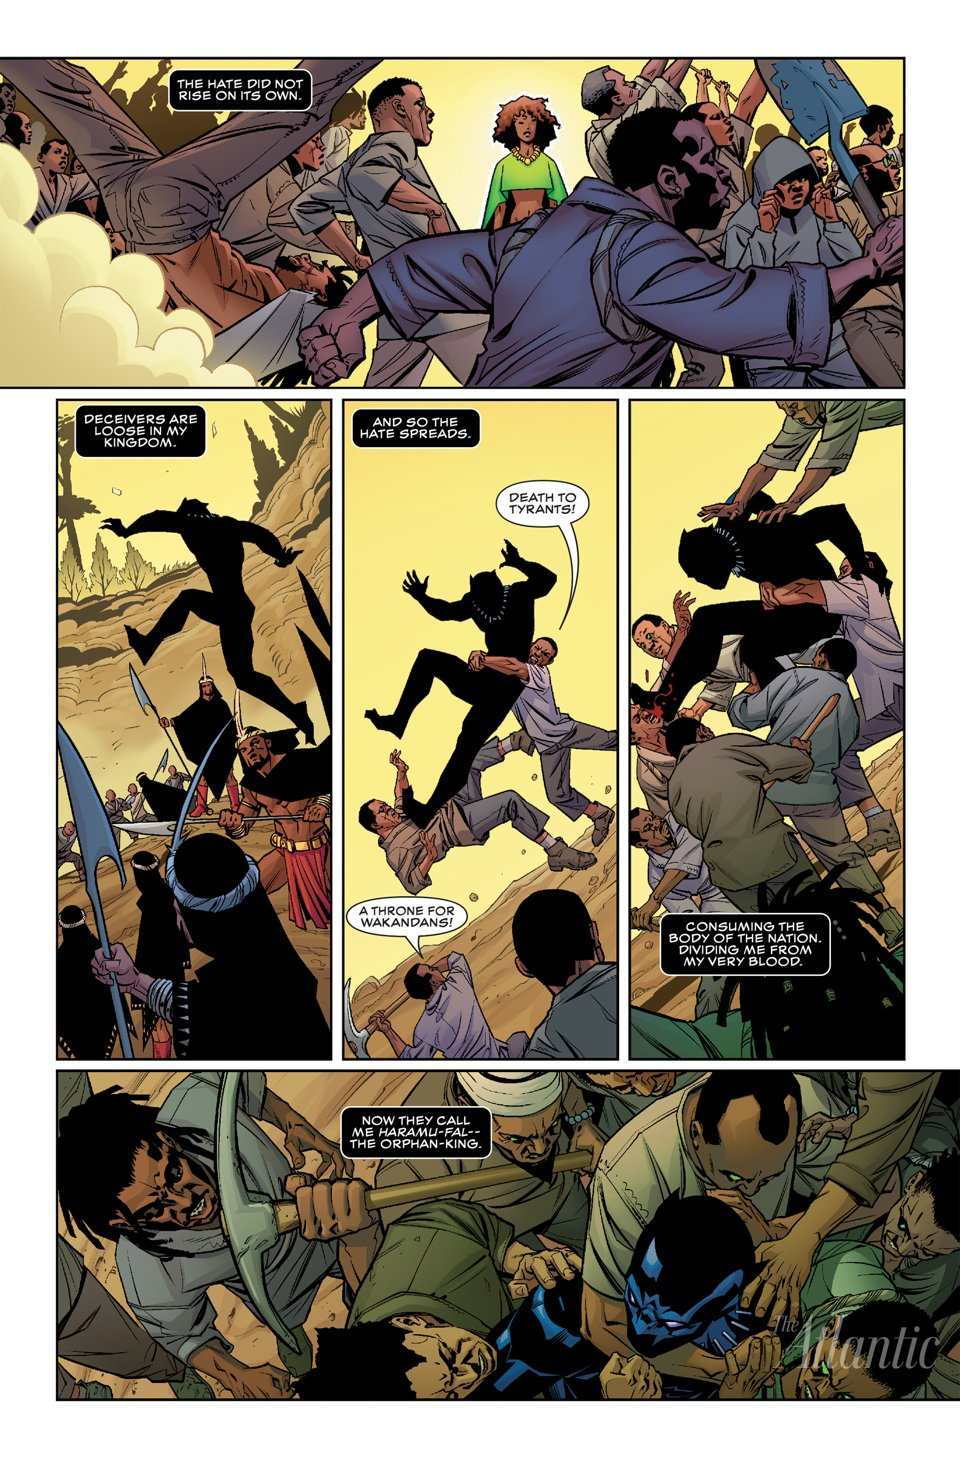 Time For A New Black Panther Ongoing From Marvel Page 2